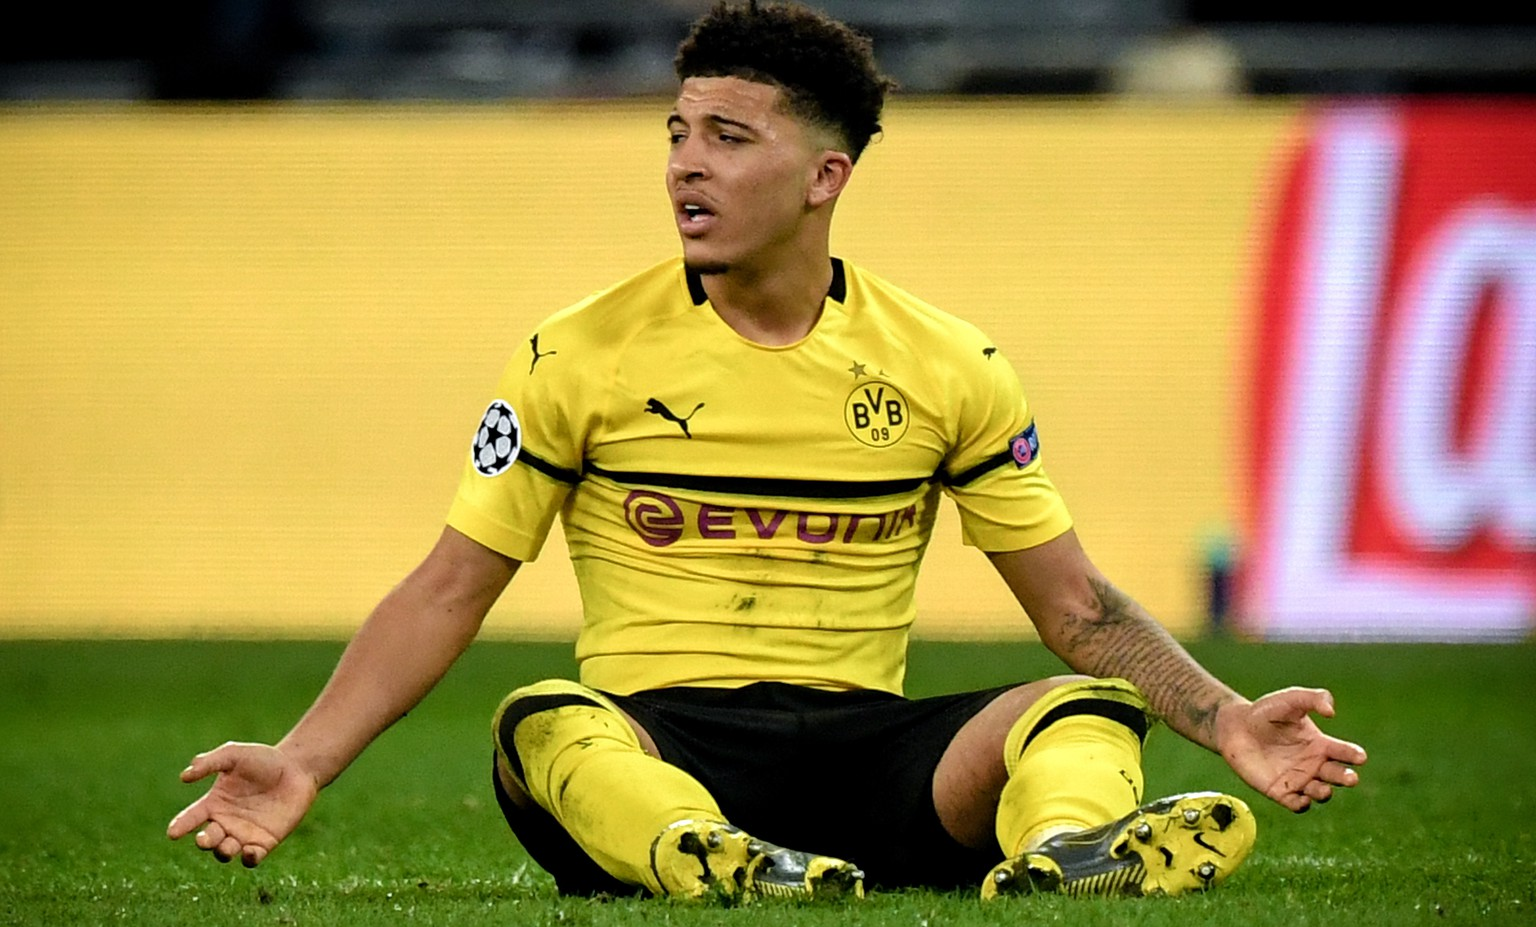 epa07367971 Dortmund's Jadon Sancho reacts during the UEFA Champions League round of 16 soccer match between Tottenham Hotspur and Borussia Dortmund at Wembley Stadium, Britain, 13 February 2019.  EPA/FACUNDO ARRIZABALAGA